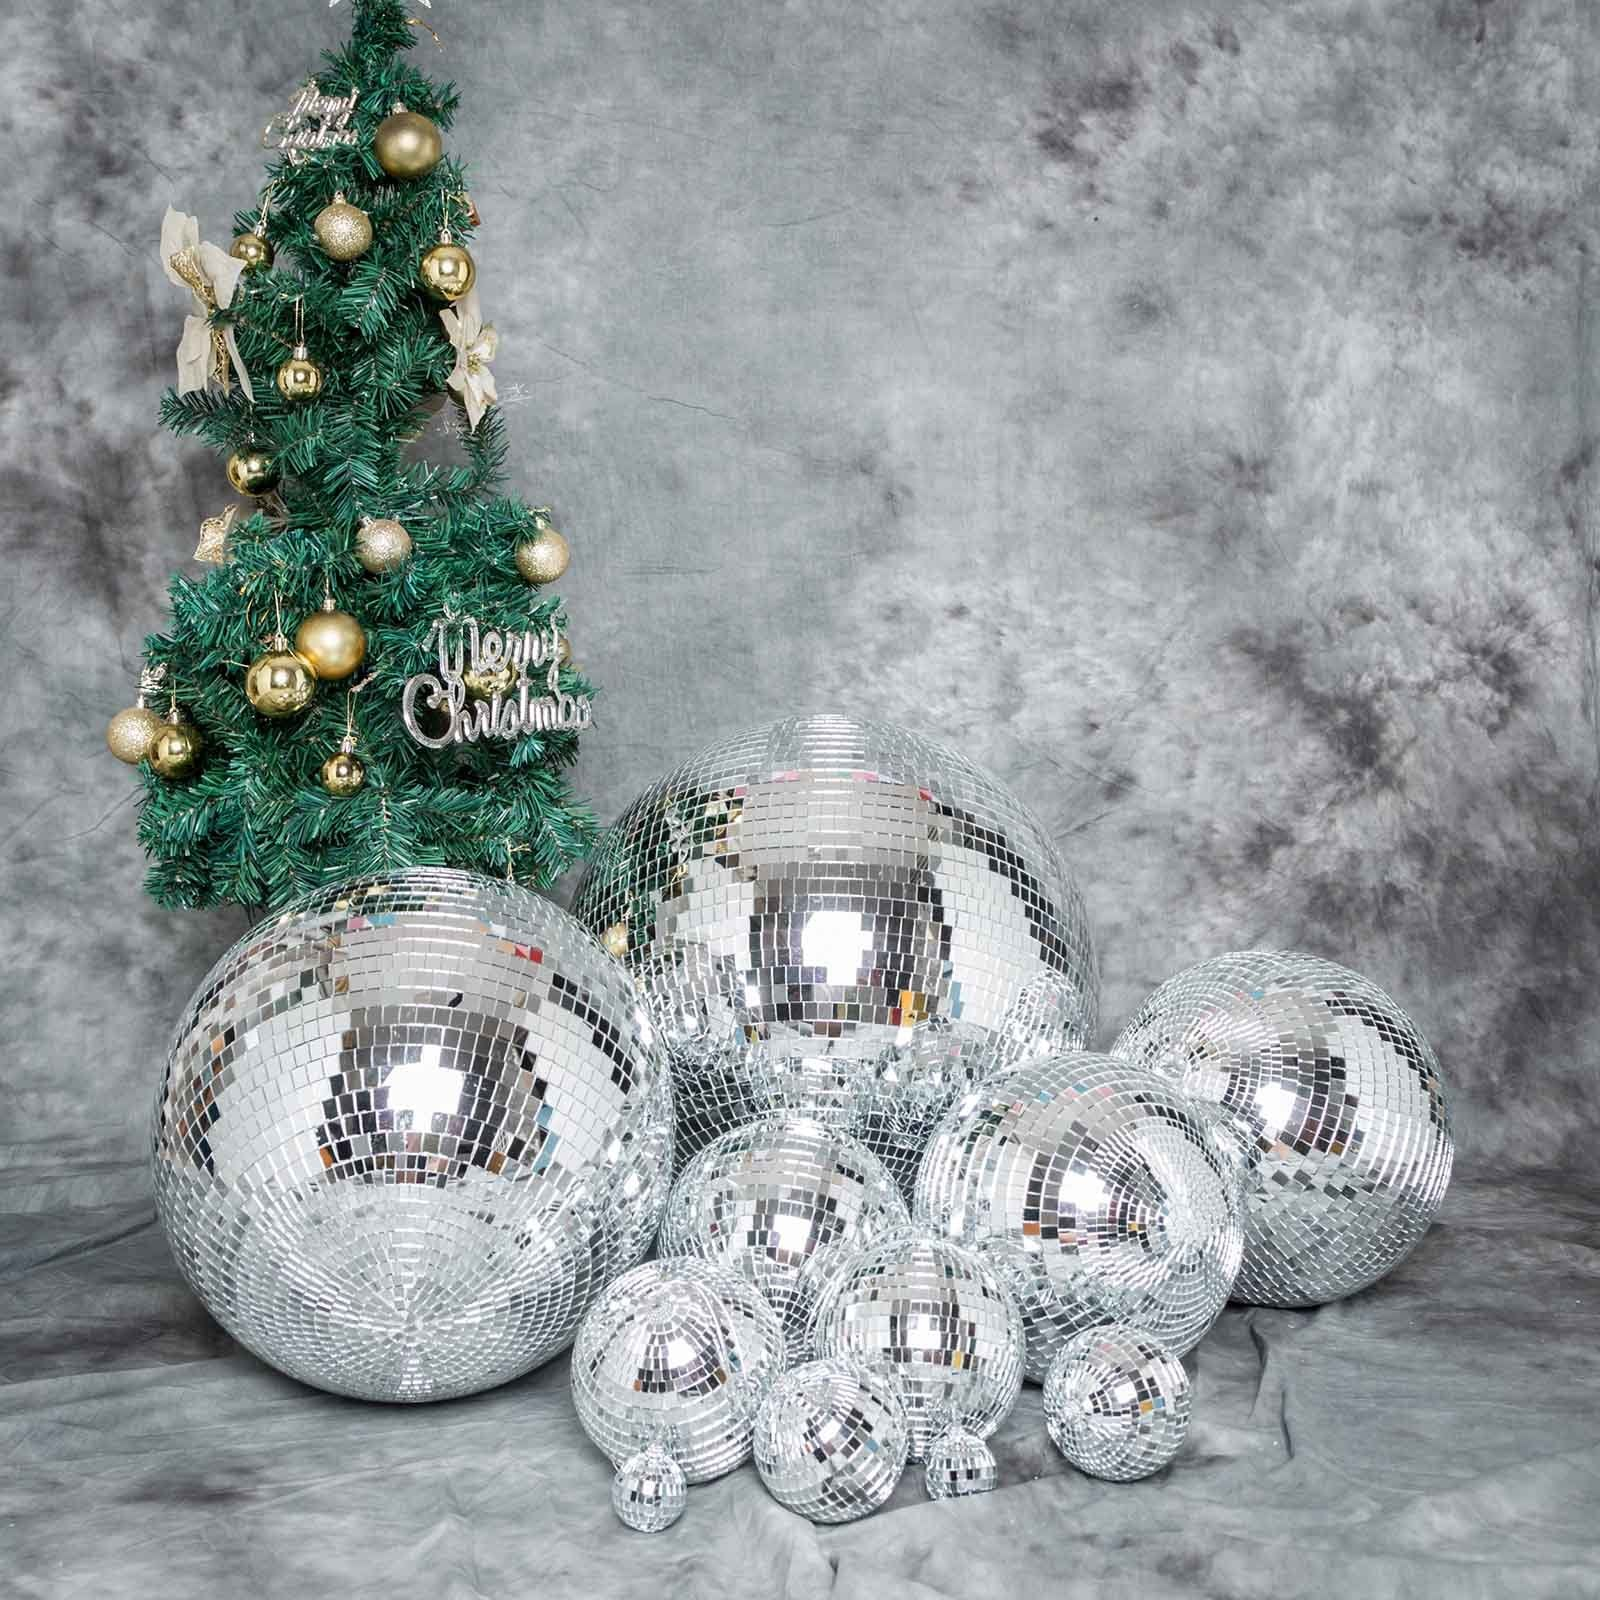 4 pcs 4 groovy glass mirror disco ball